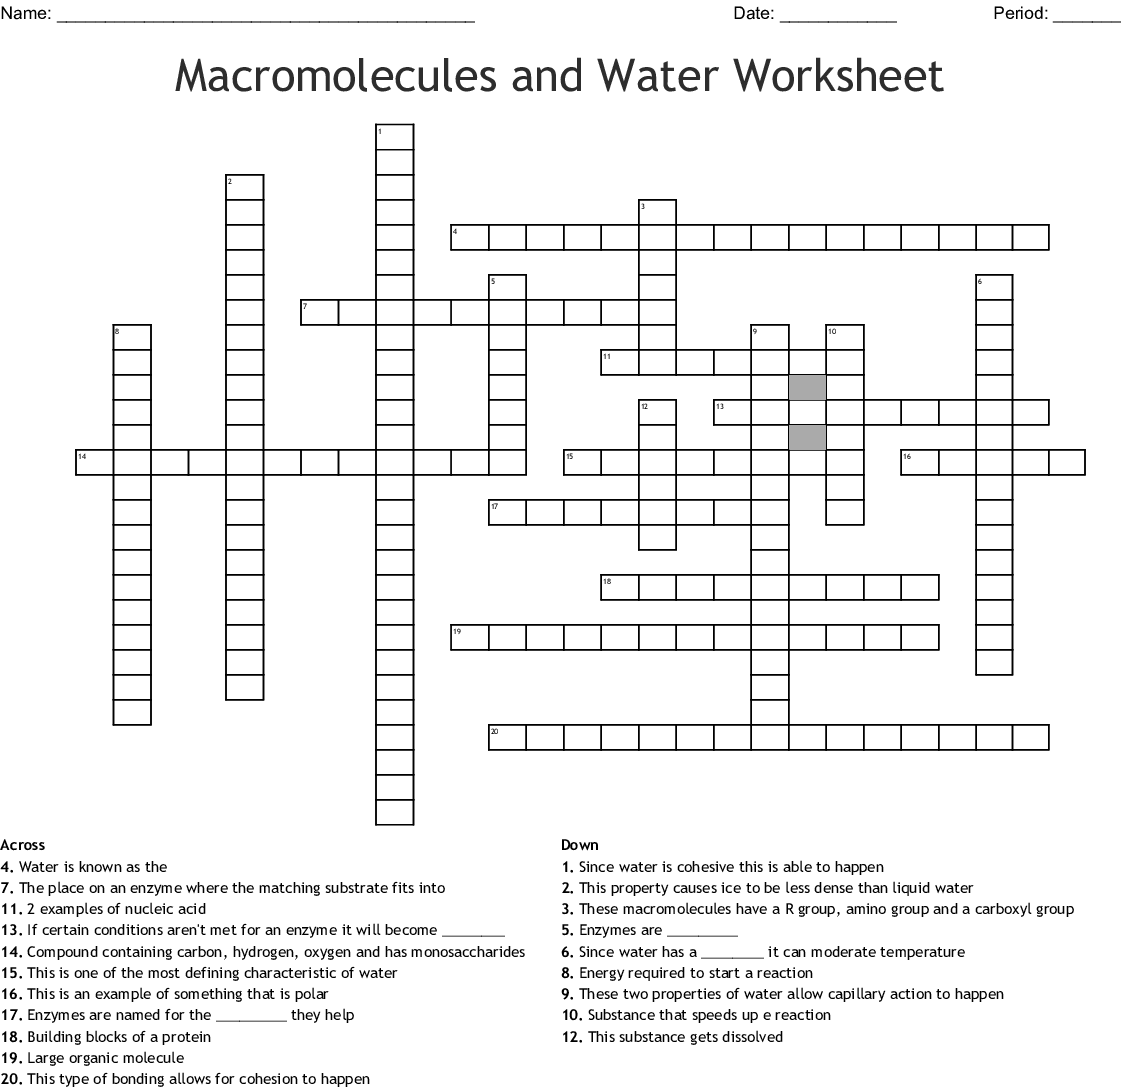 Macromolecules And Water Worksheet Crossword